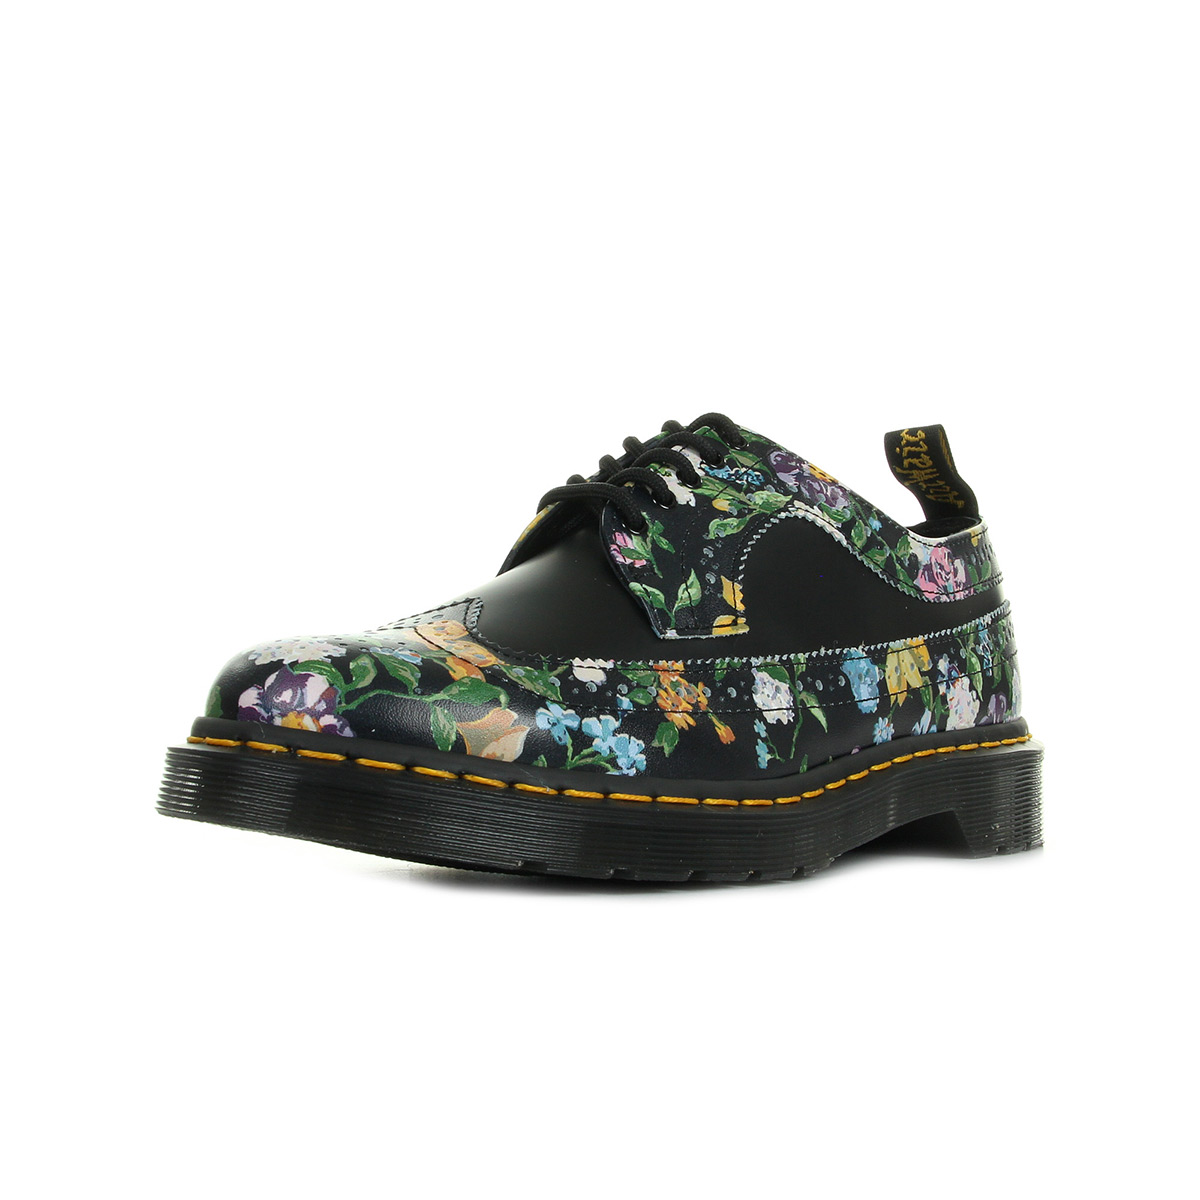 dr martens wingtip shoe black darcy floral 22729001 ville femme. Black Bedroom Furniture Sets. Home Design Ideas